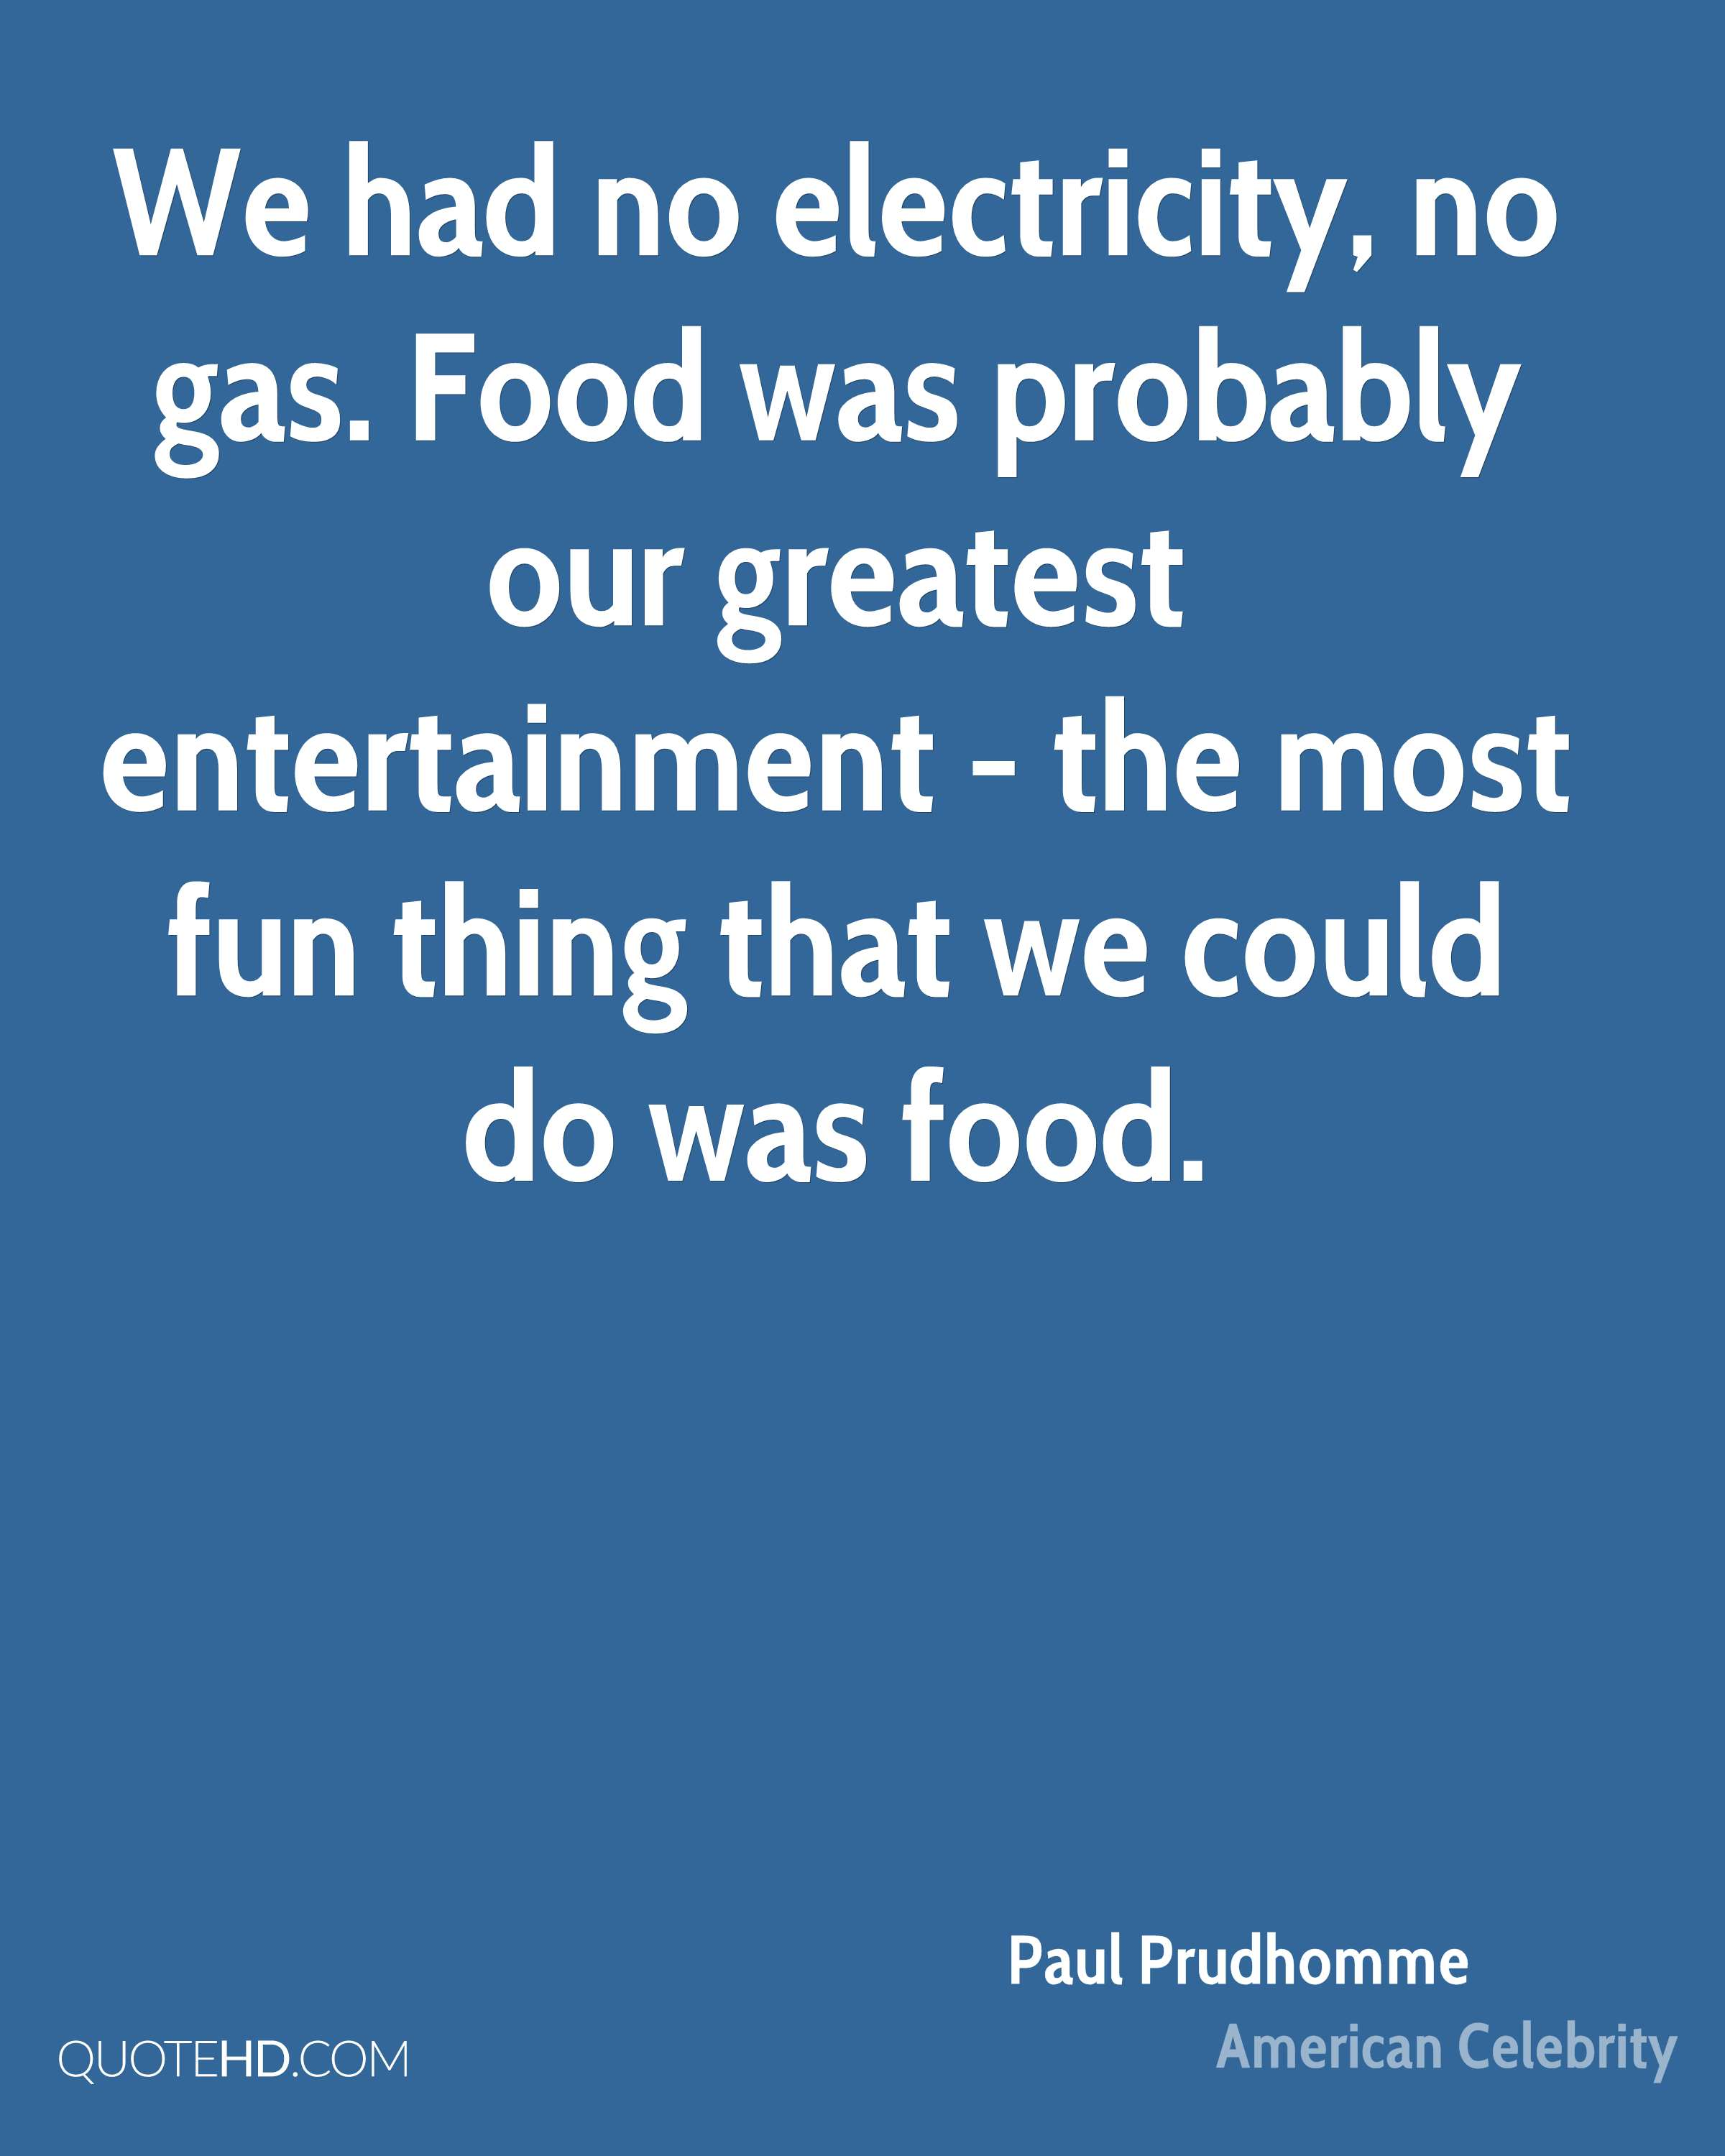 We had no electricity, no gas. Food was probably our greatest entertainment - the most fun thing that we could do was food.